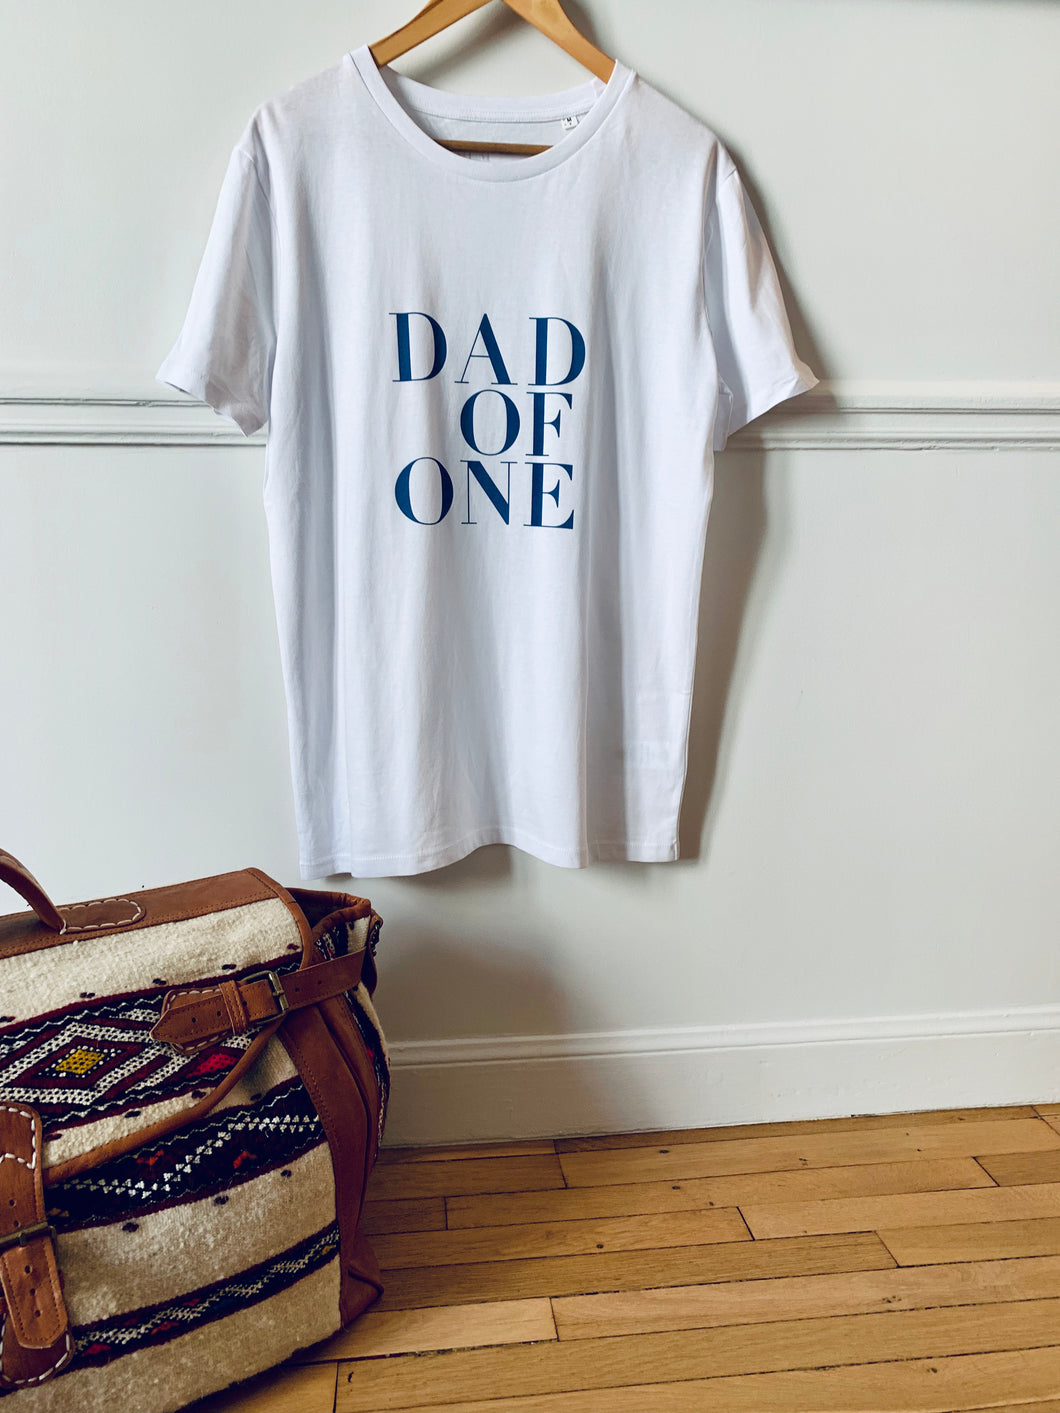 Disponible pour tous les DAD OF ONE, DAD OF TWO, DAD OF THREE, DAD OF FOUR, FIVE, SIX.... TWINS ! Cliquez sur la photo !